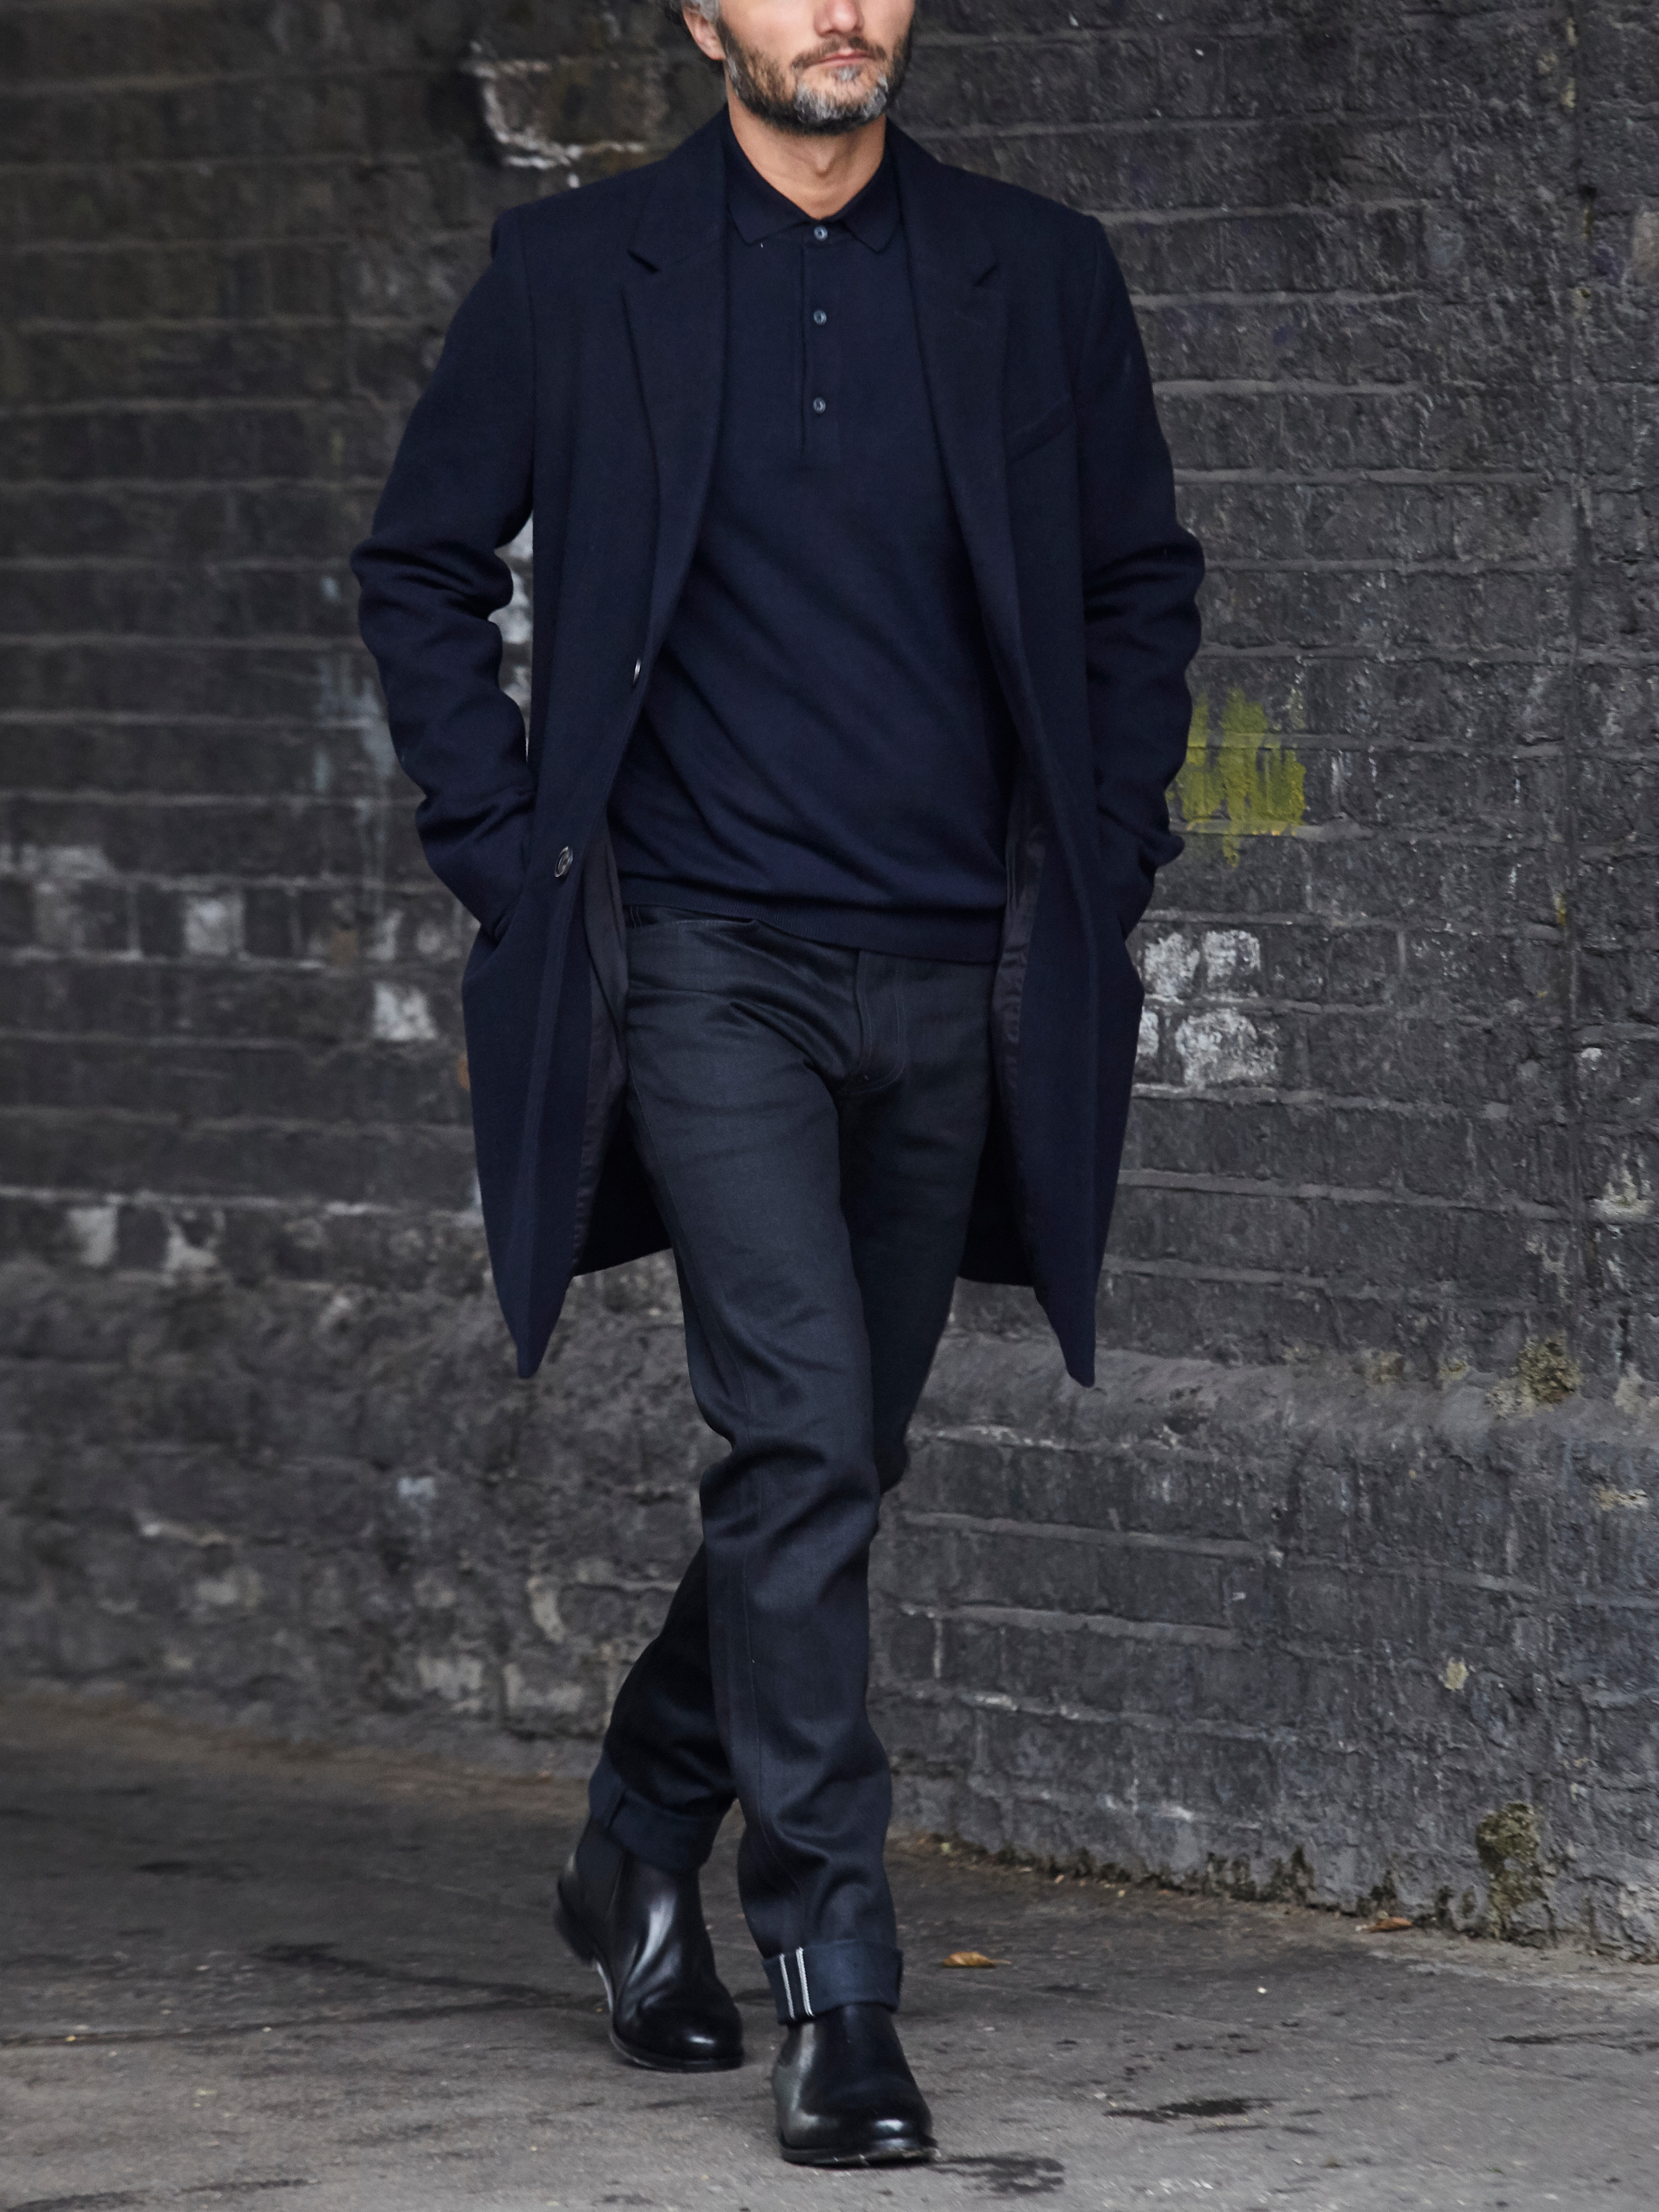 Men's outfit idea for 2021 with single-breasted overcoat, navy long-sleeved polo, black chinos, black chelsea boots. Suitable for fall and winter.